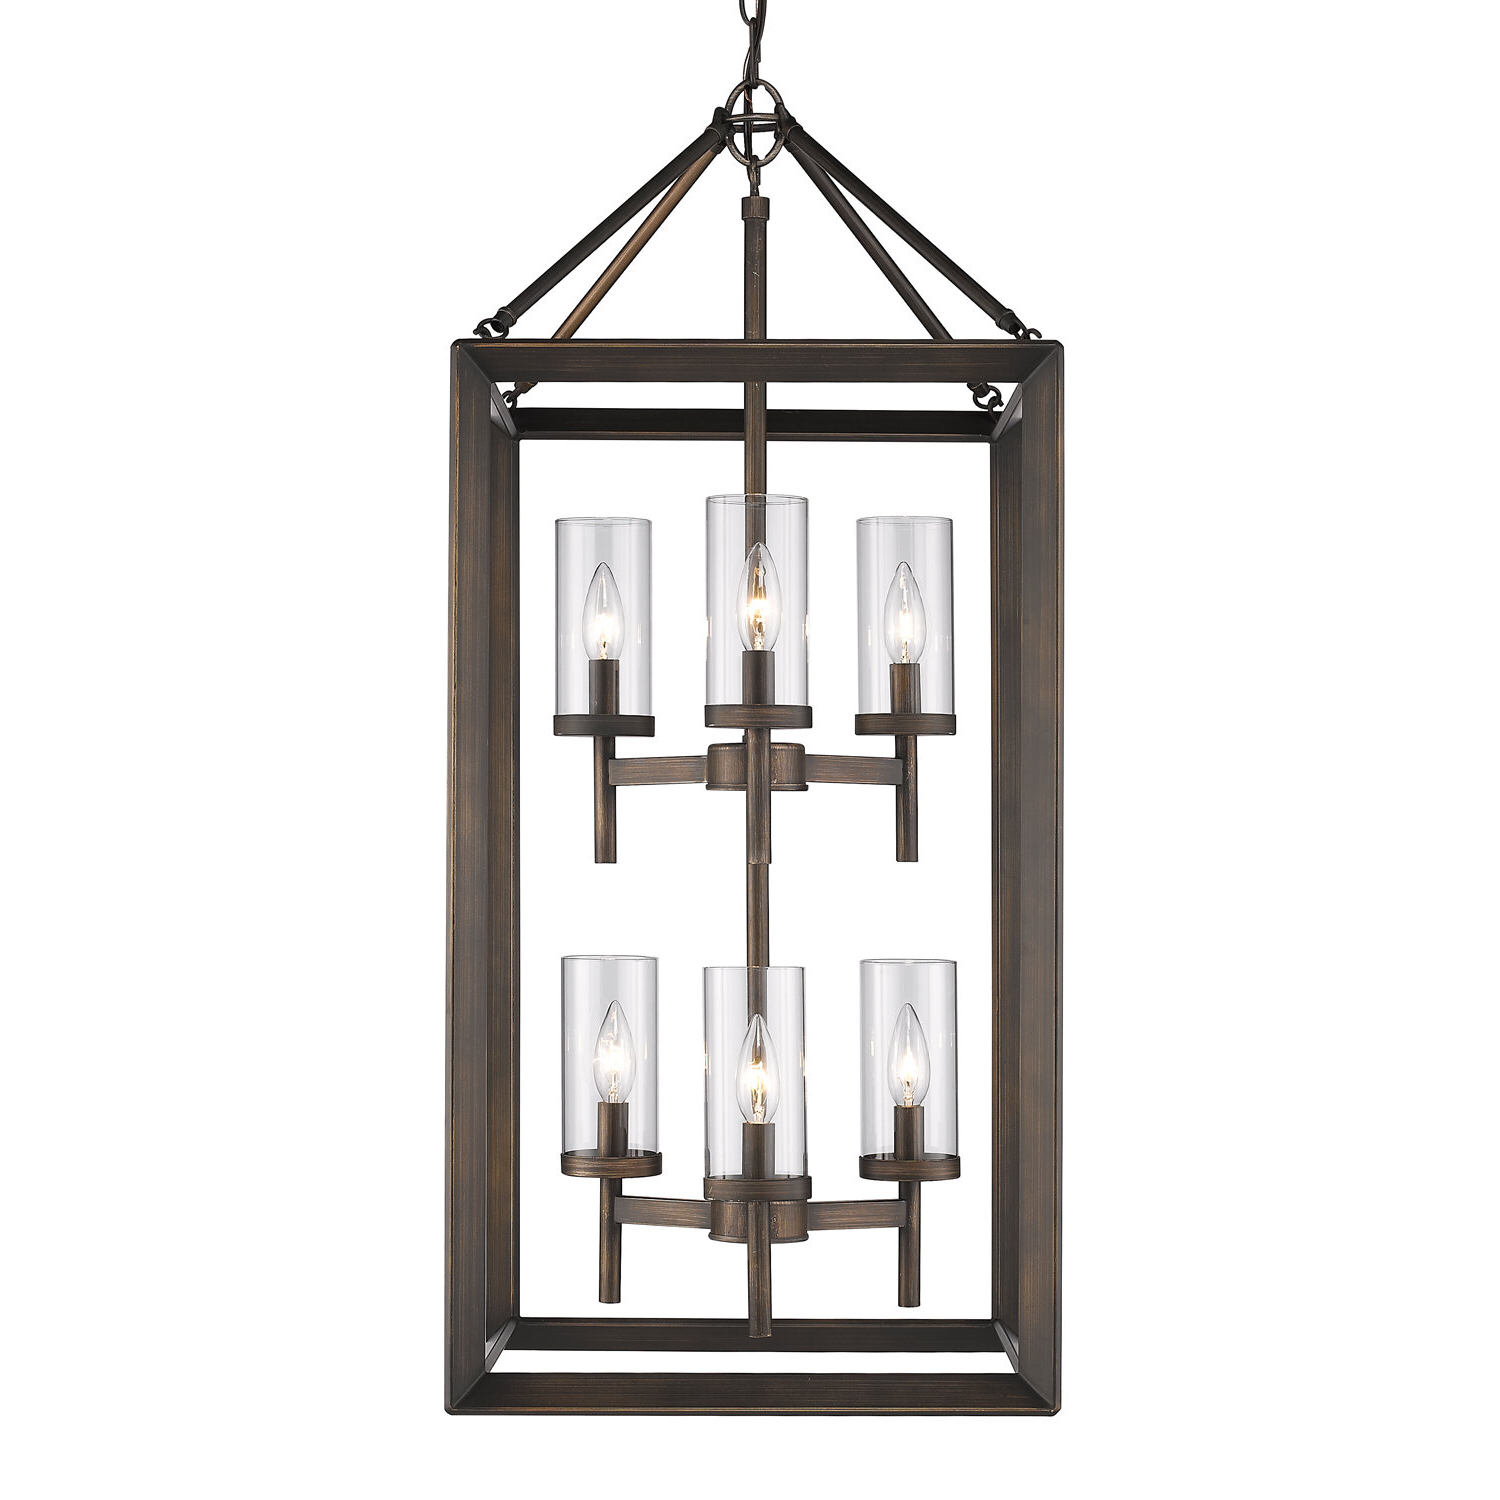 Three Posts Thorne 6 Light Lantern Pendant & Reviews Pertaining To Most Up To Date Thorne 6 Light Lantern Square / Rectangle Pendants (View 18 of 20)